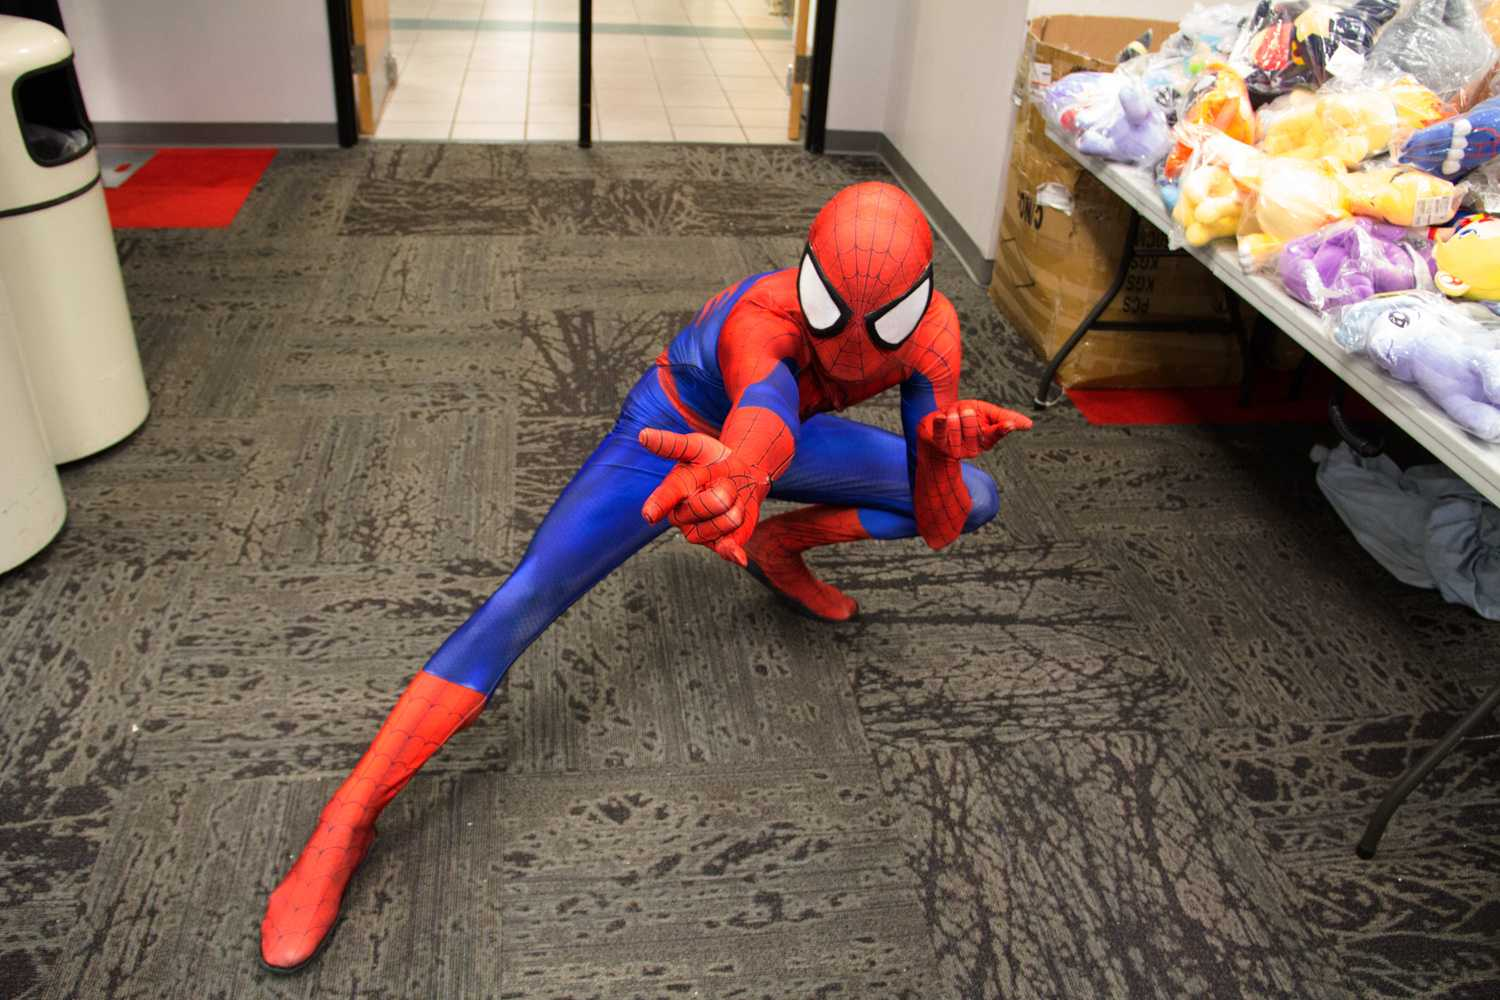 Henry Evans stands ready to attack Electro or Venom as The Amazing Spider-Man.